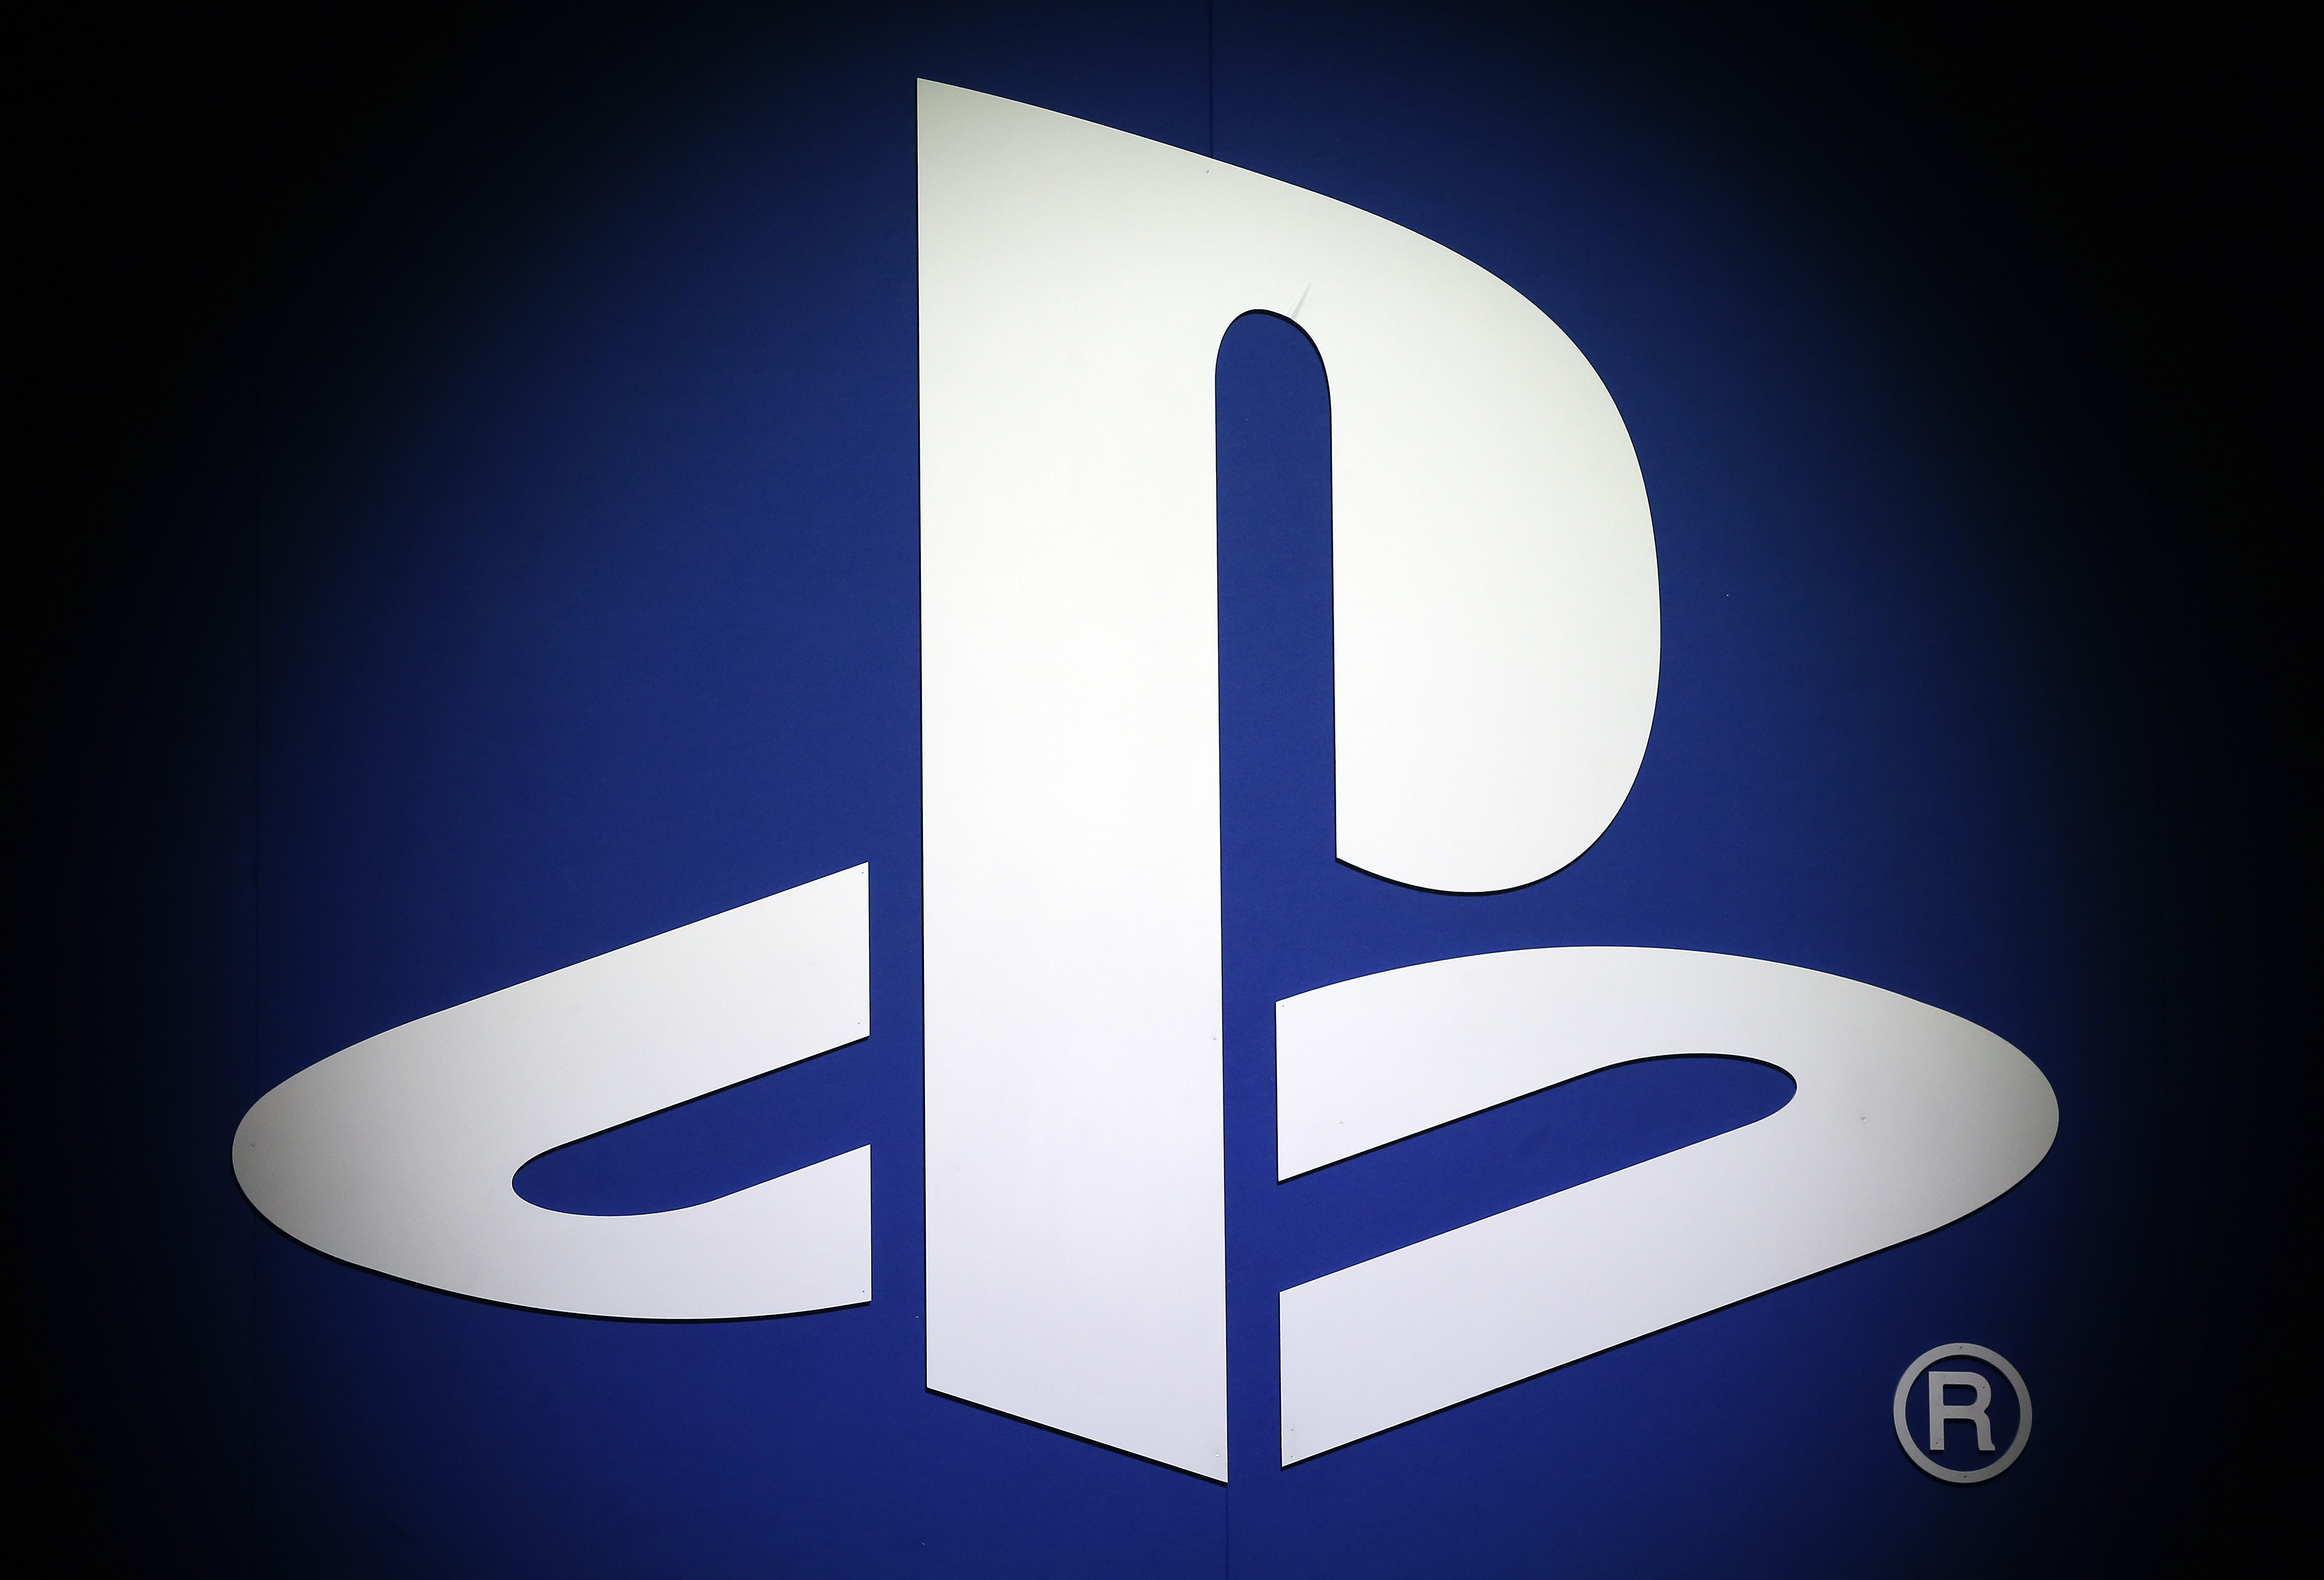 Gamers rejoice: the PlayStation 5 is coming out next year